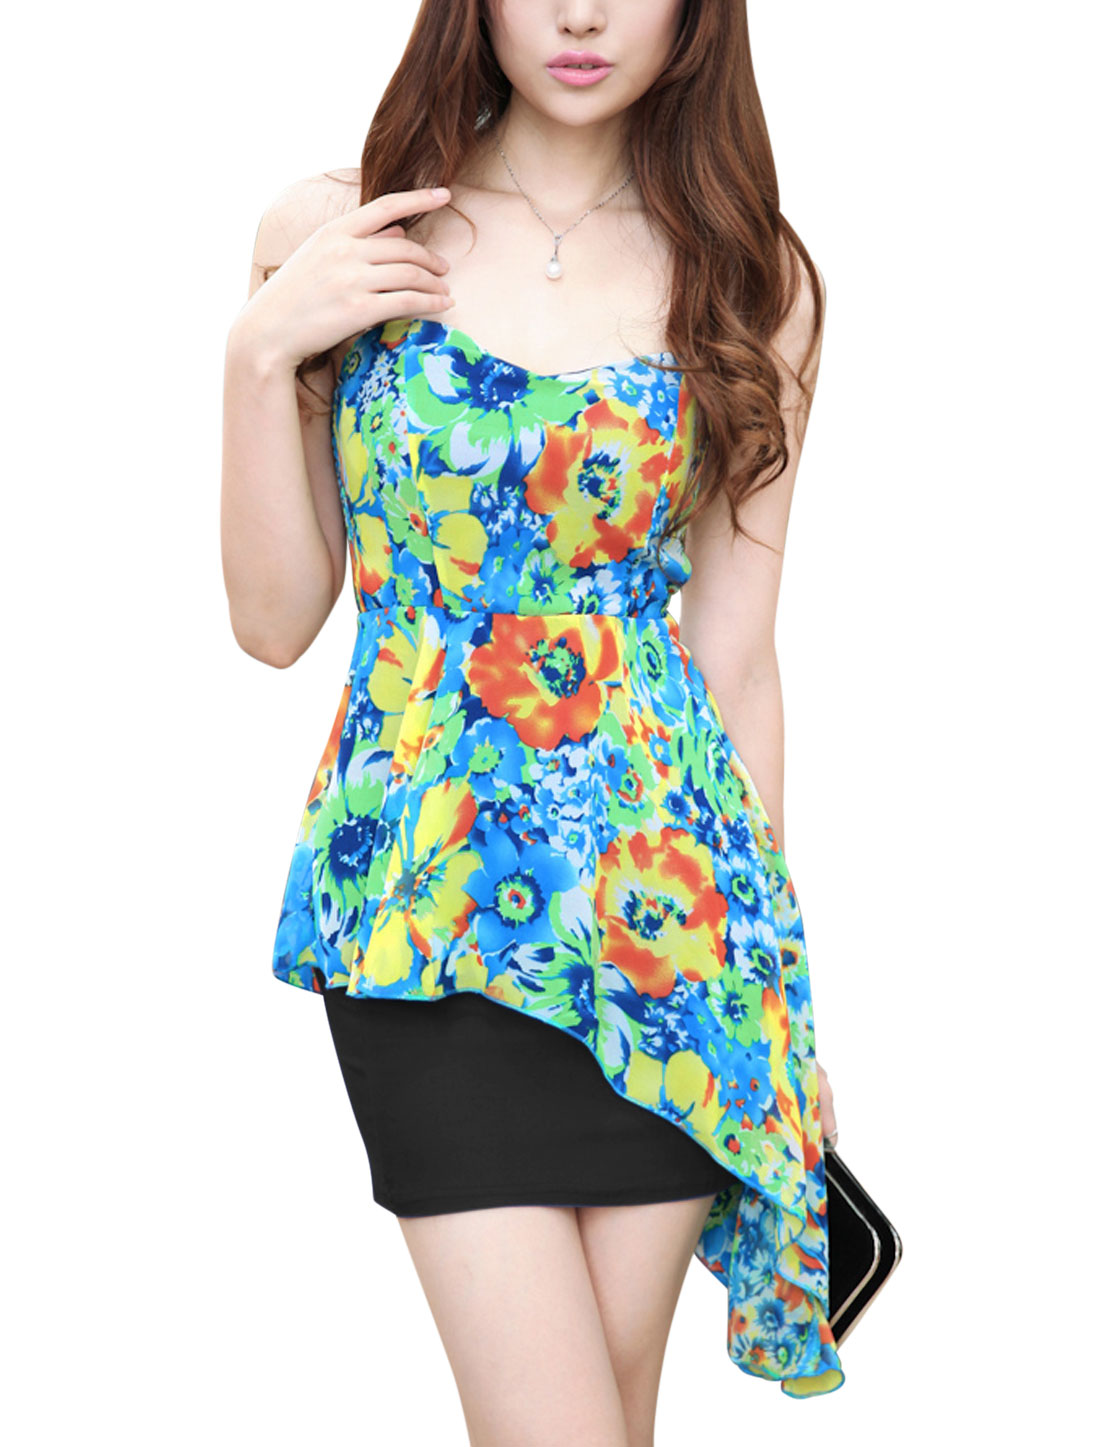 Women Black Chiffon Panel Floral Prints Strapless Peplum Dress XS